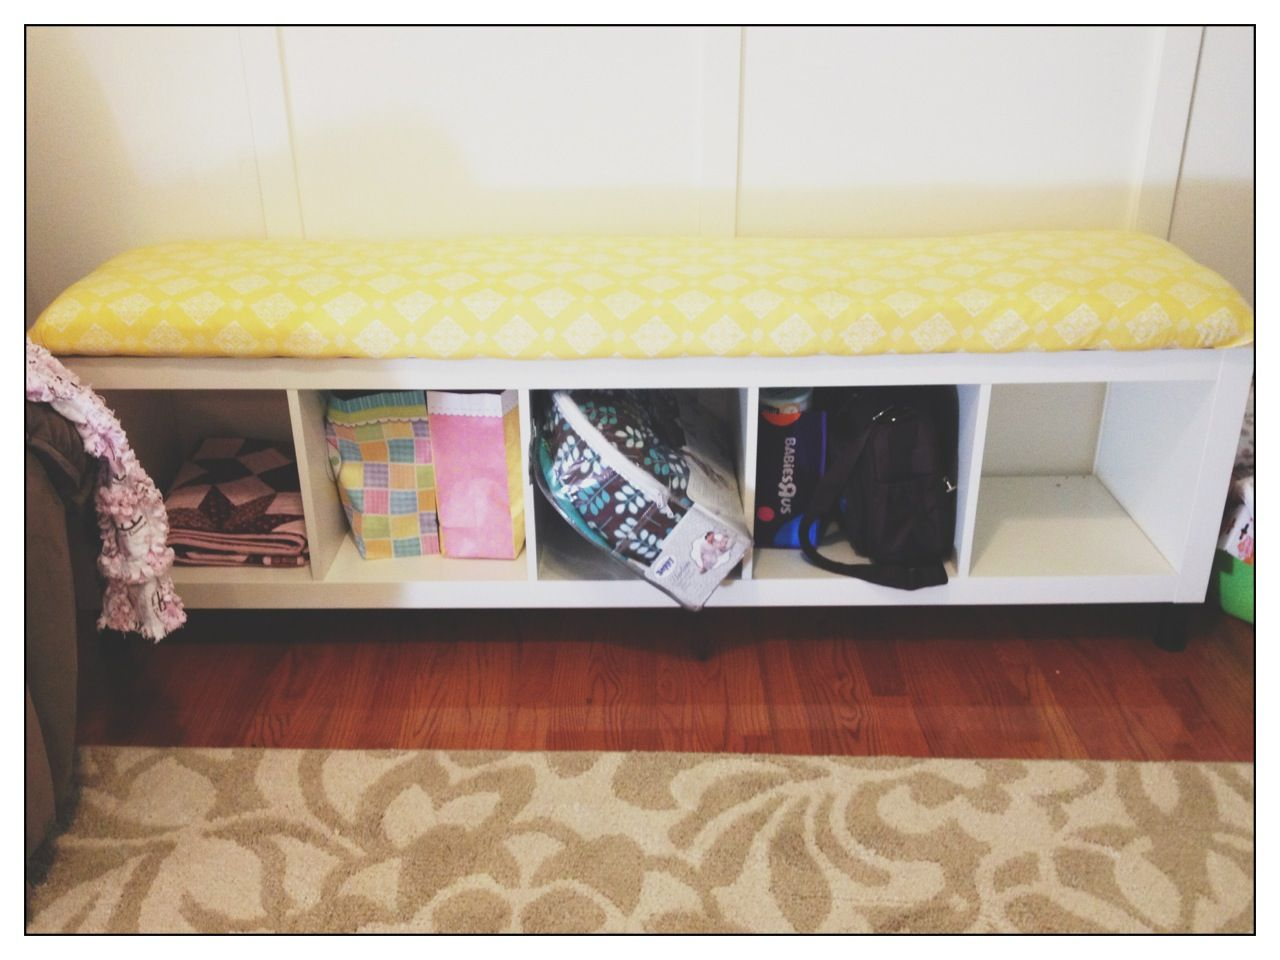 Diy Bench Seat Cushion With Mattress Foam Pad Instead Of Expensive Fabric Store Padding Total